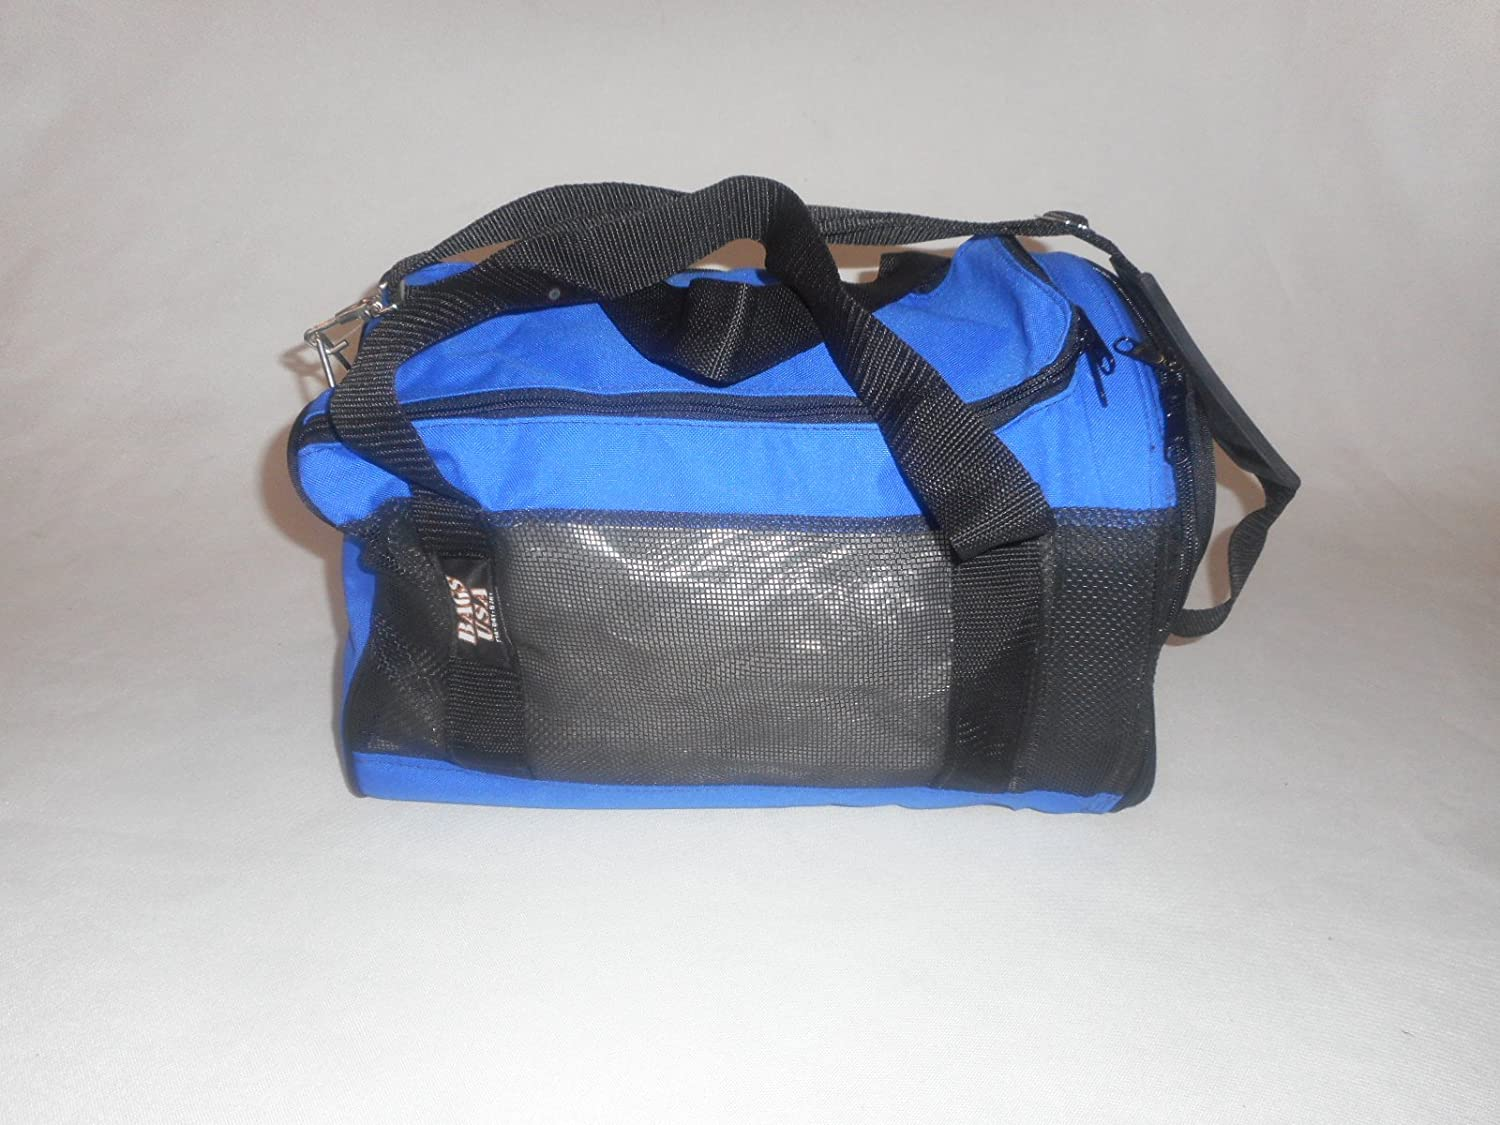 BAGS USA Pet Dog,Cat Carrier,Airlines Approved Dog Carrier,Made in U.s.a. (bluee)